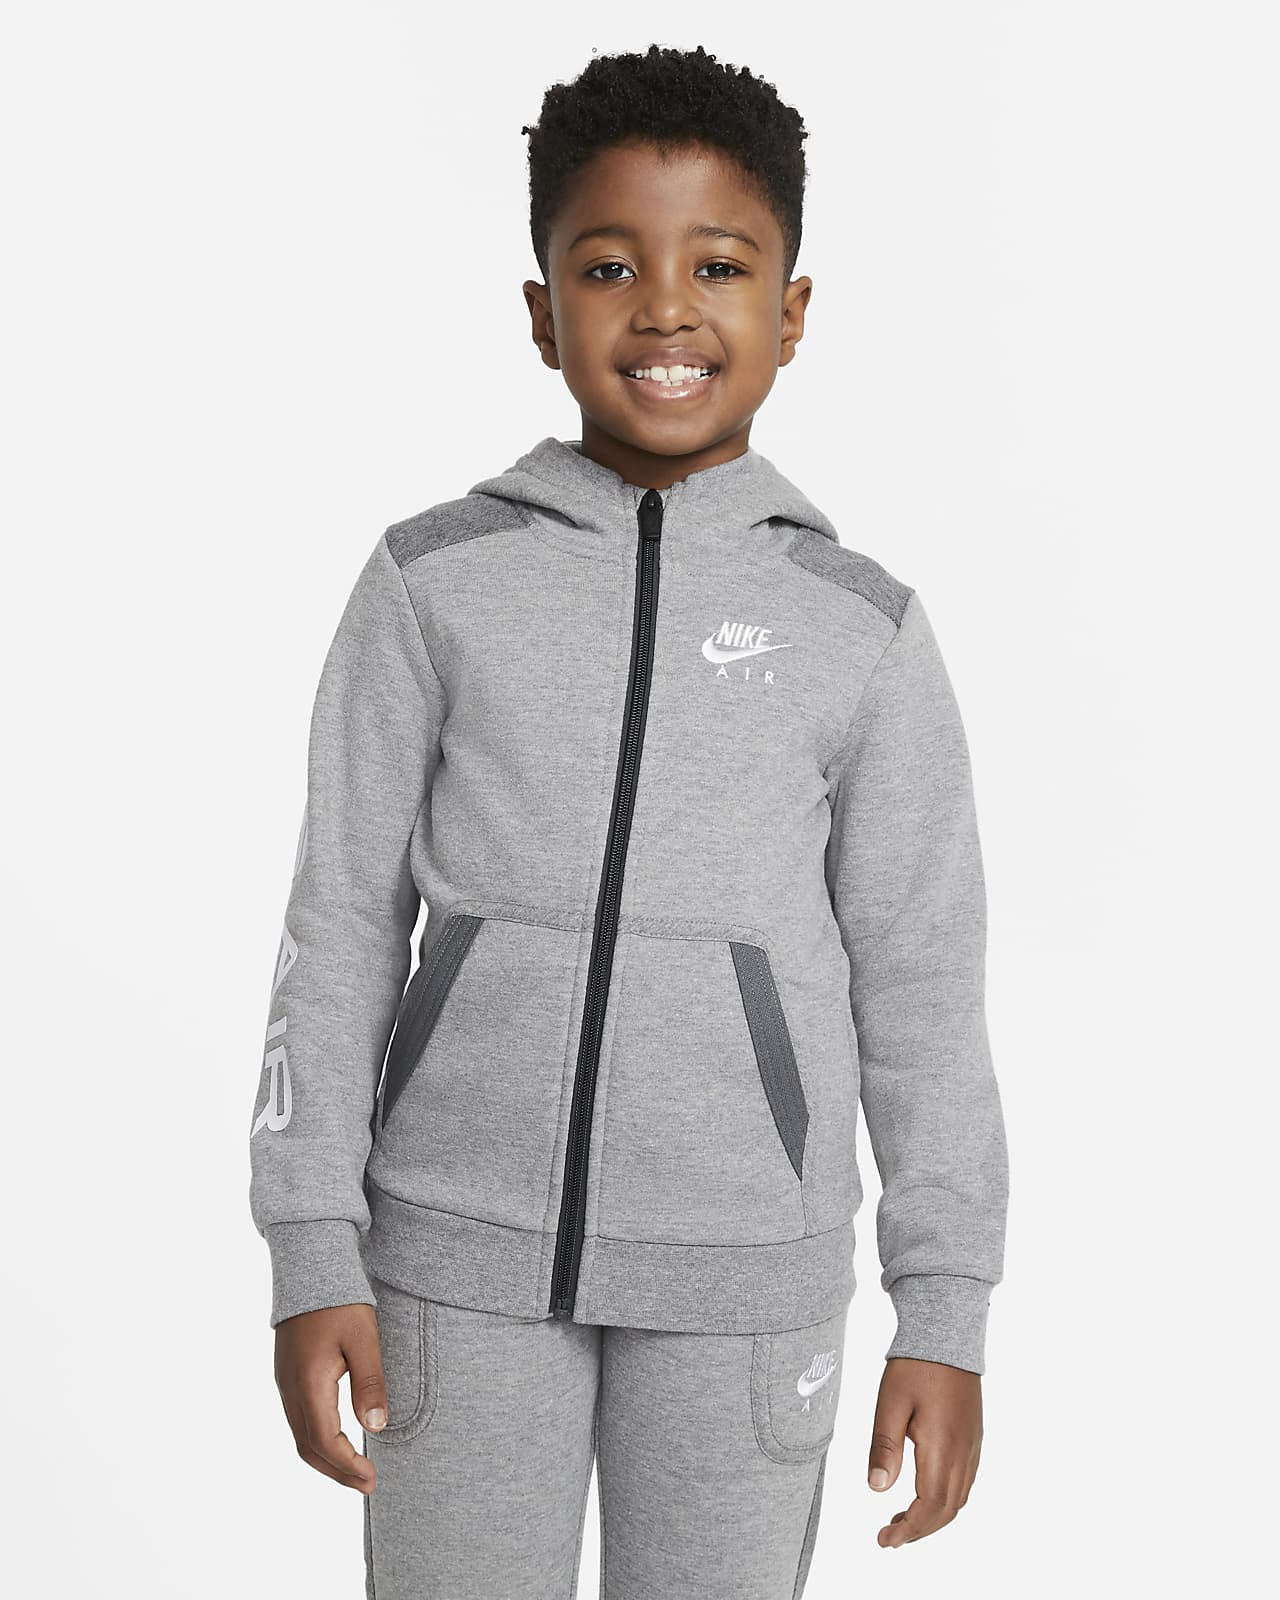 Nike Air Little Kids' Full-Zip Hoodie